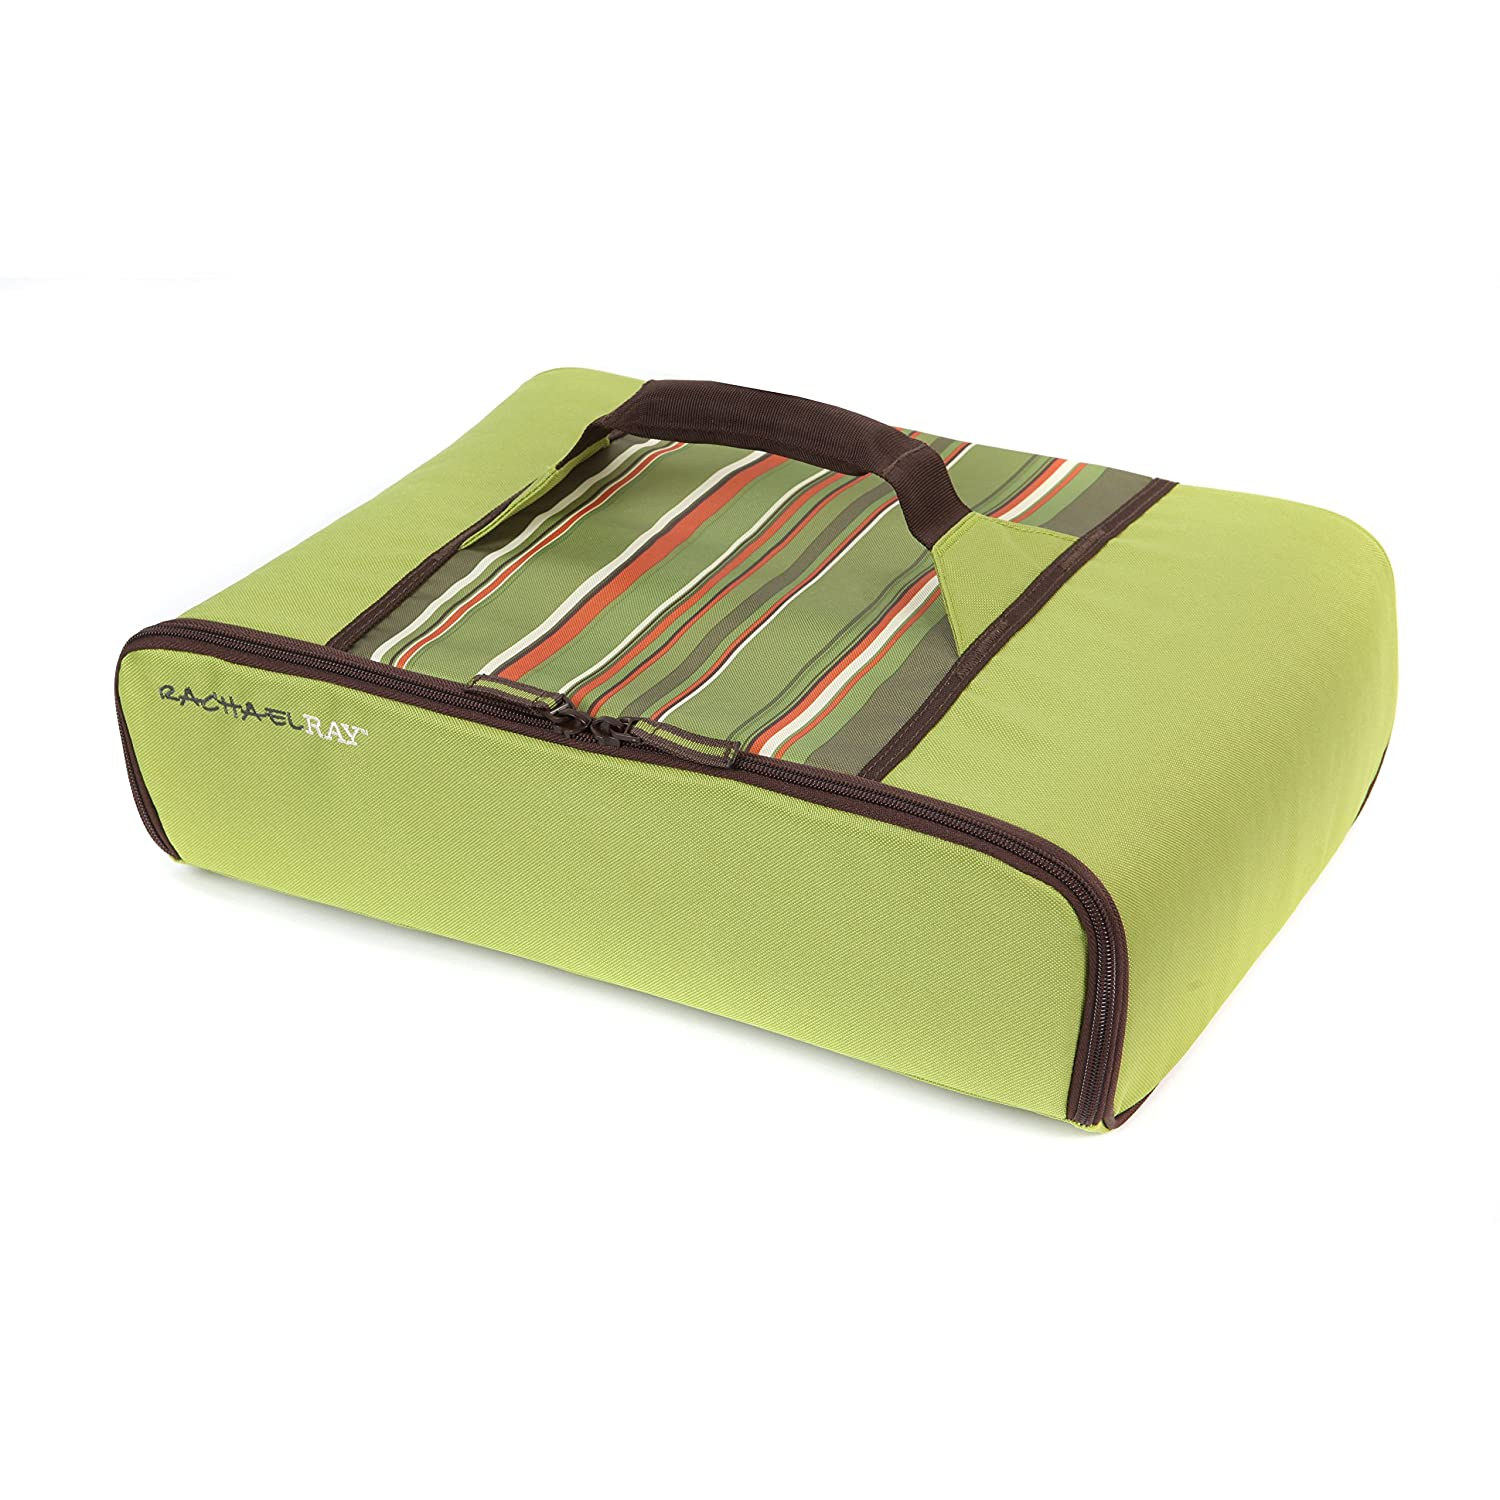 "Rachael Ray Universal Thermal Carrier, Fits 9""X13"" Baking Dishes, Insulated Casserole Carrier for Hot and Cold Transport, Green Stripe"